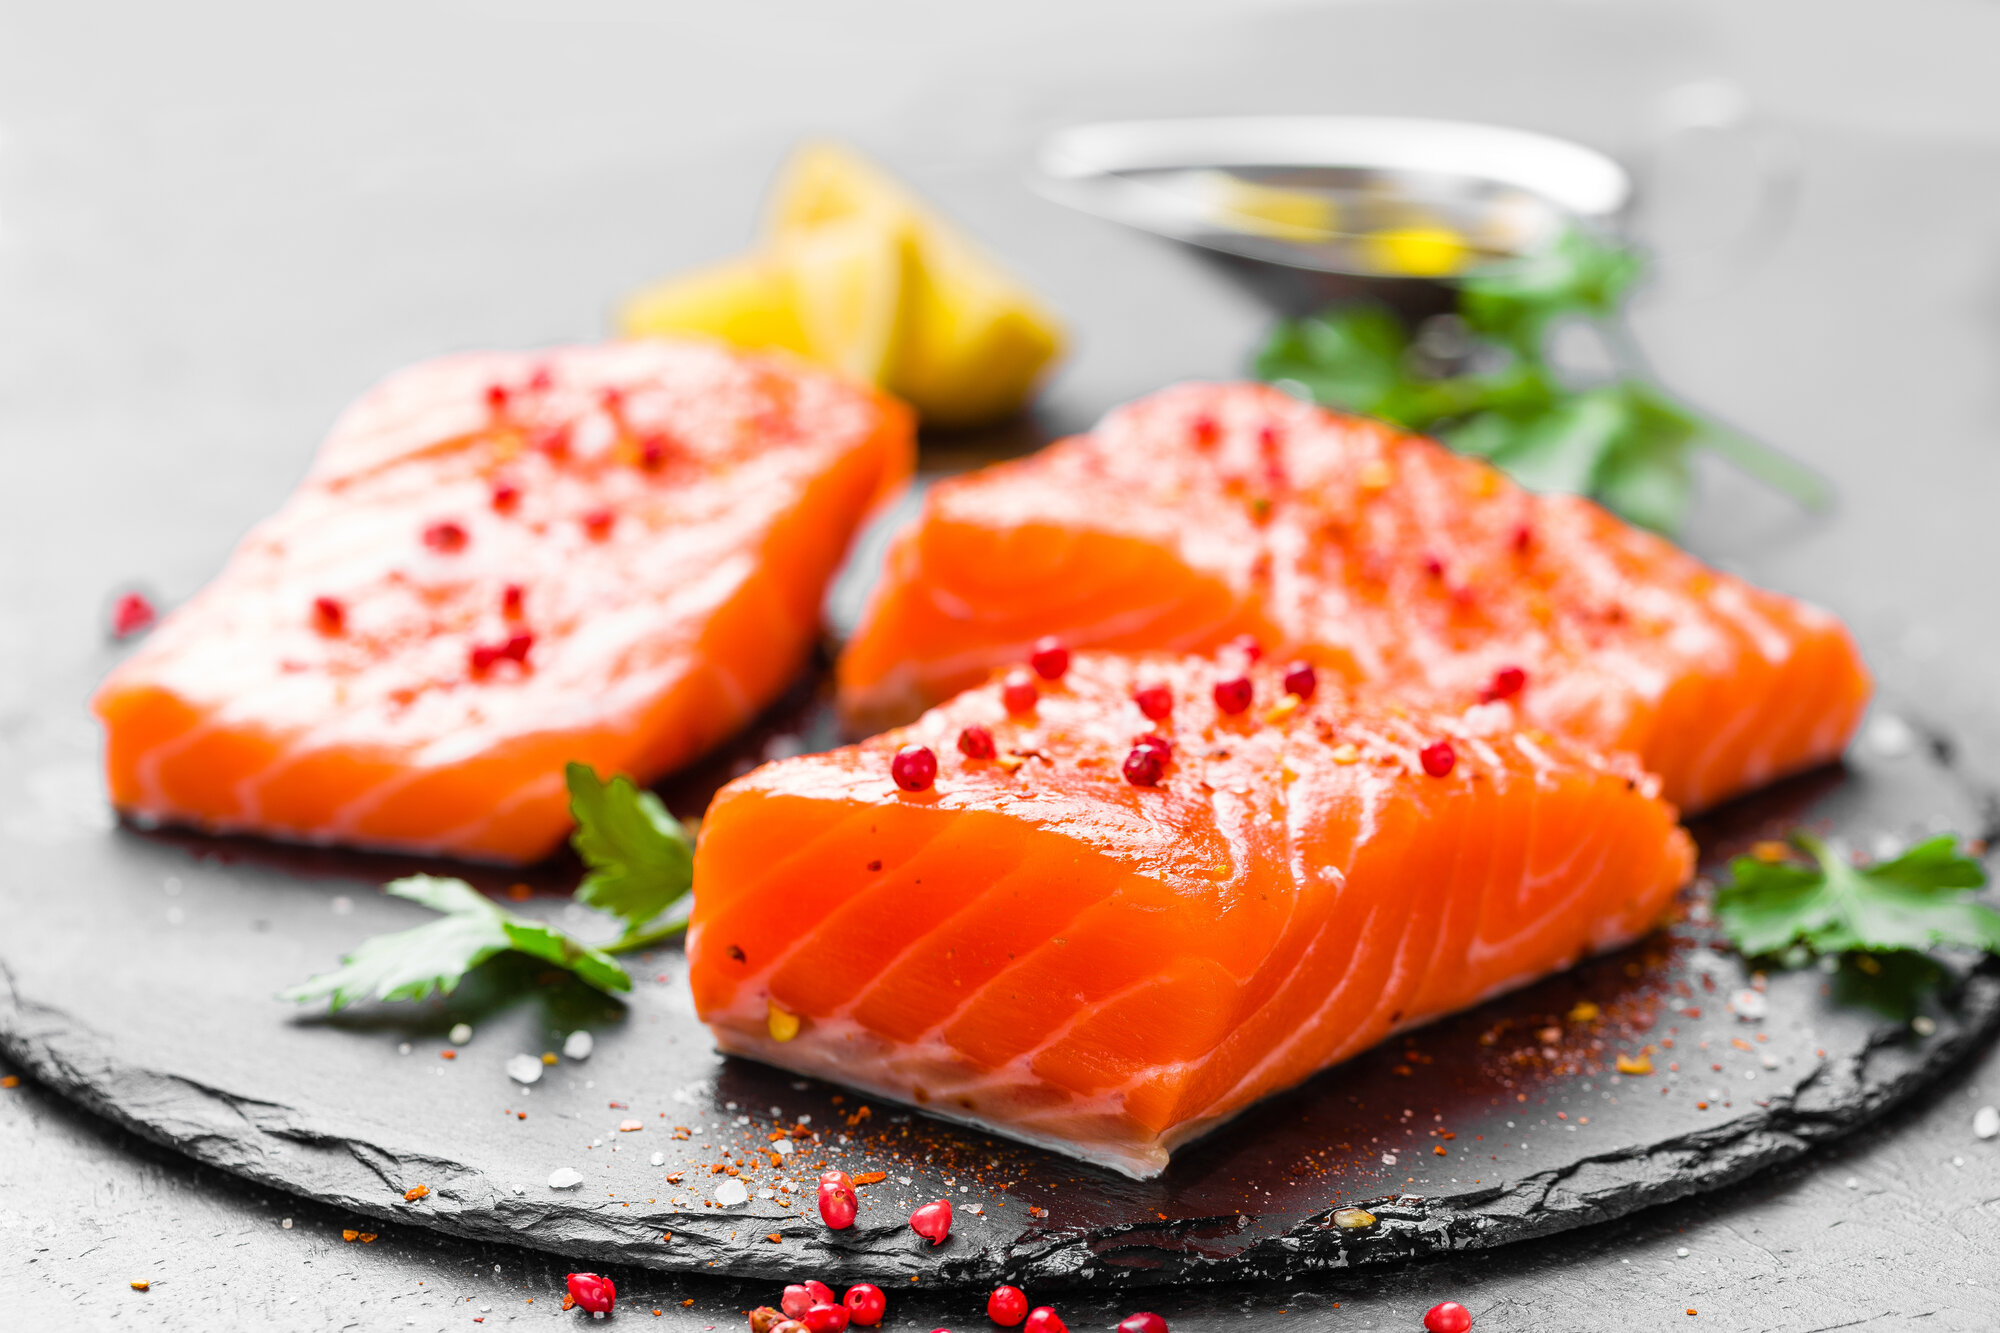 salmon fresh salmon fish raw salmon fish fillet PVSUNQG - Startseite